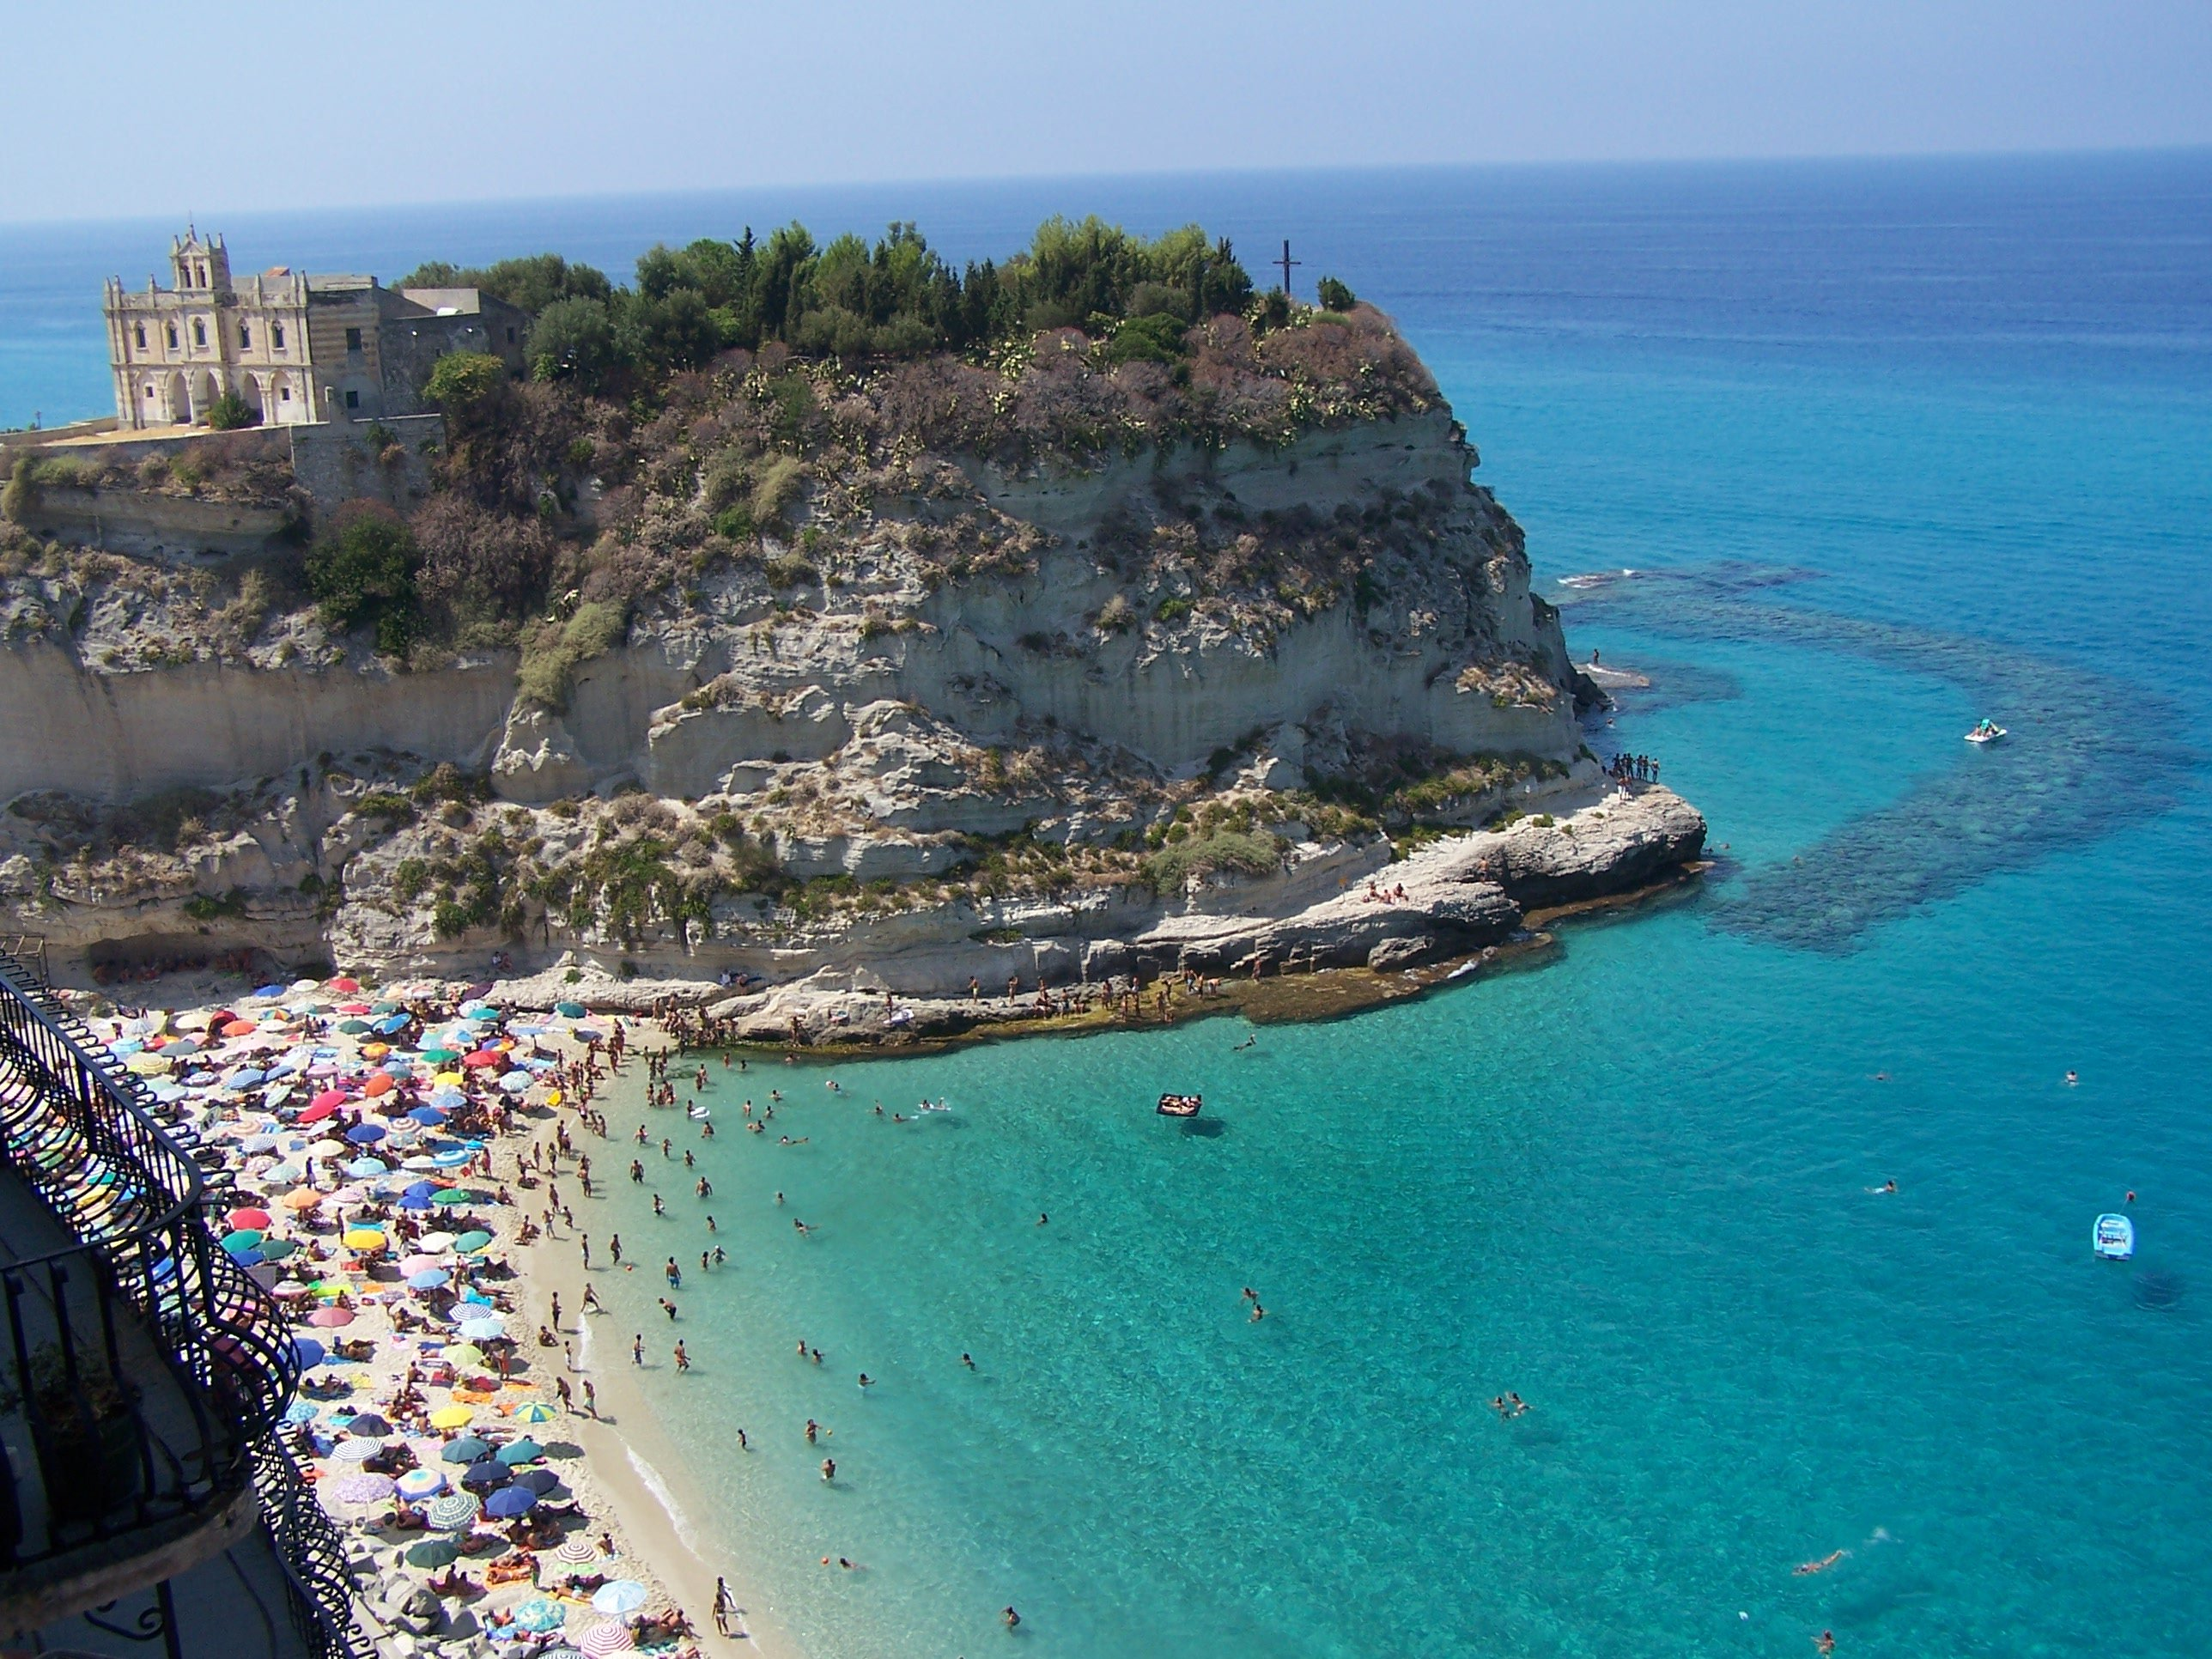 Best 41 Calabria Wallpaper on HipWallpaper Calabria Italy 2576x1932